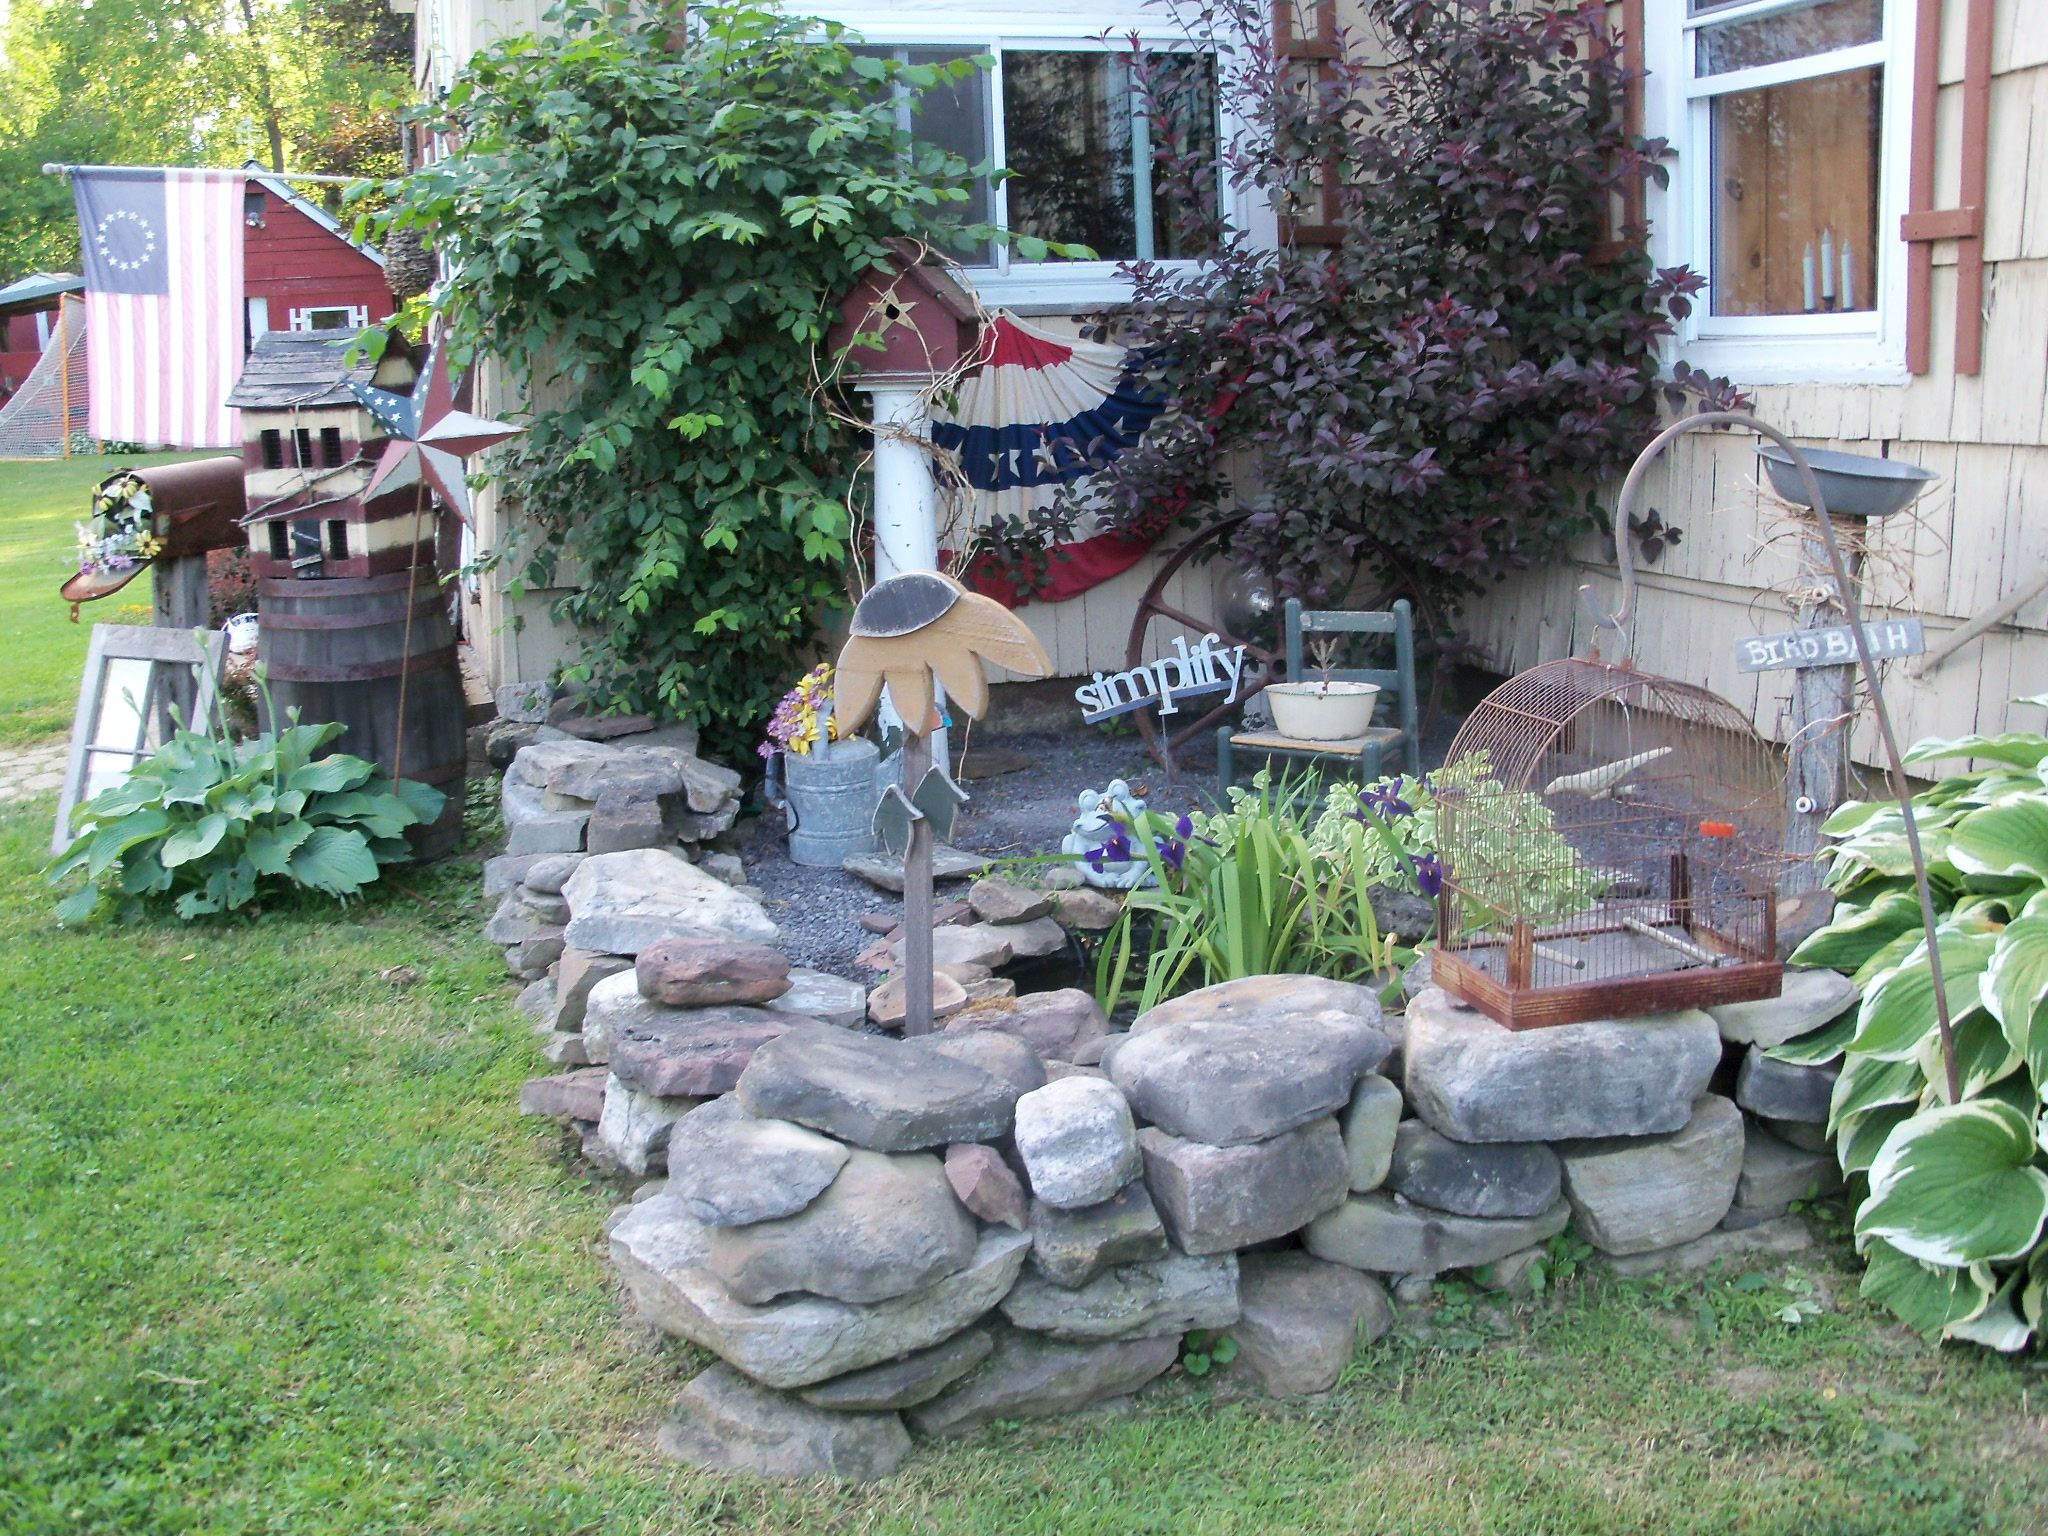 Another shot of my stone wall and yet another mini fish pond ...